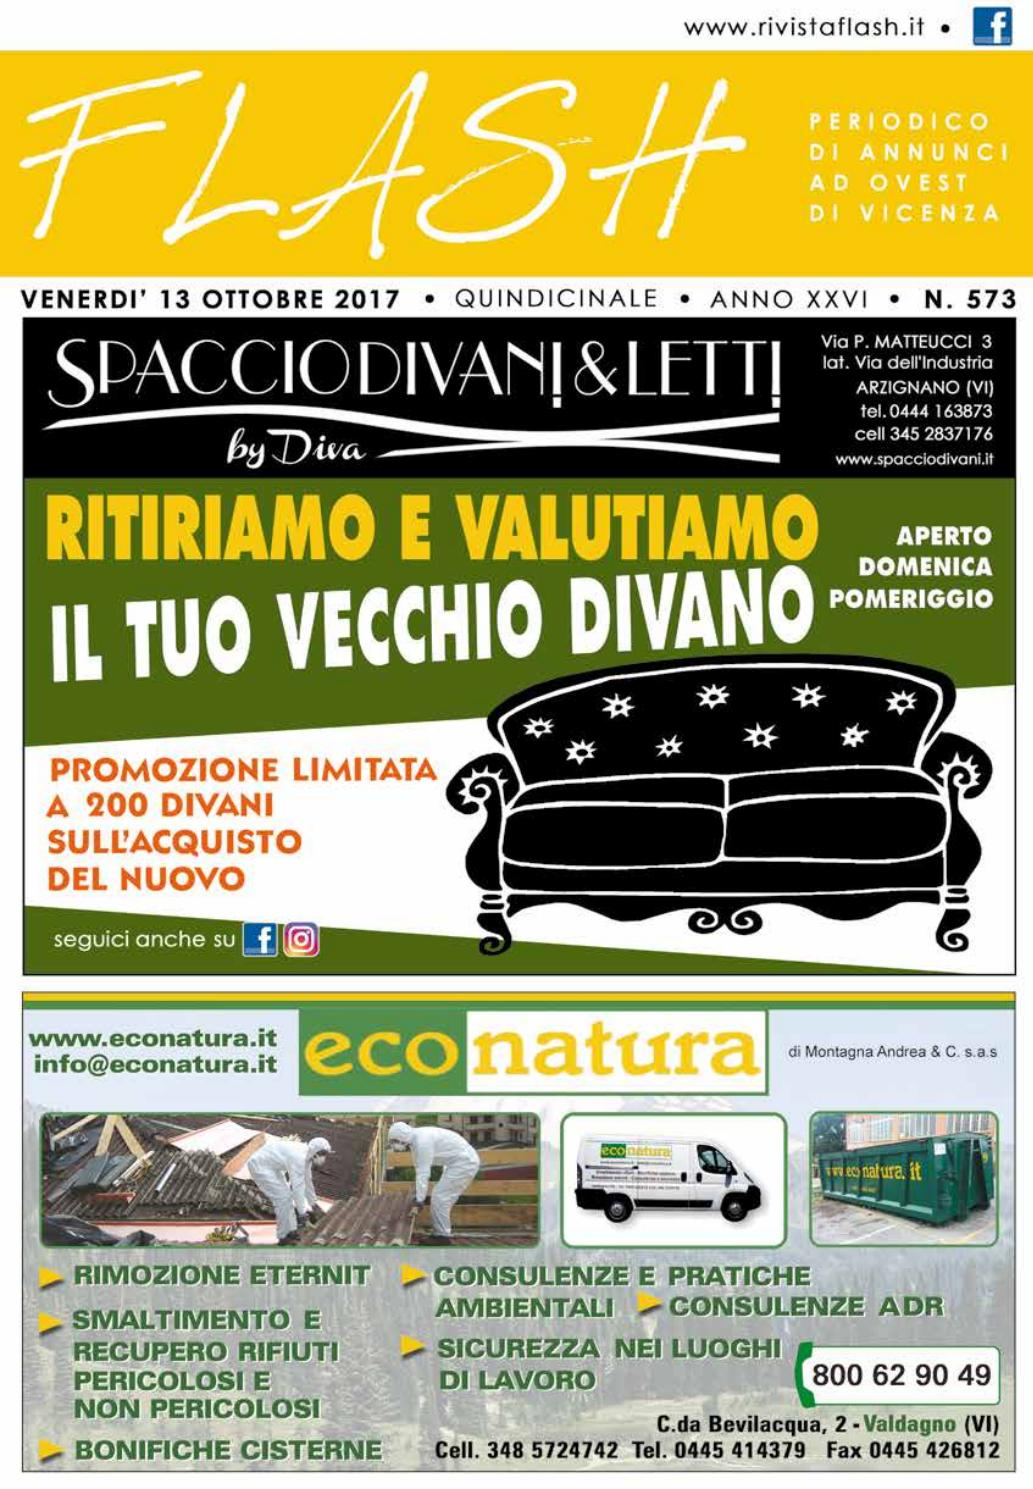 Caminetto Elettrico Maverick Flash 573 By Rivistaflash Issuu